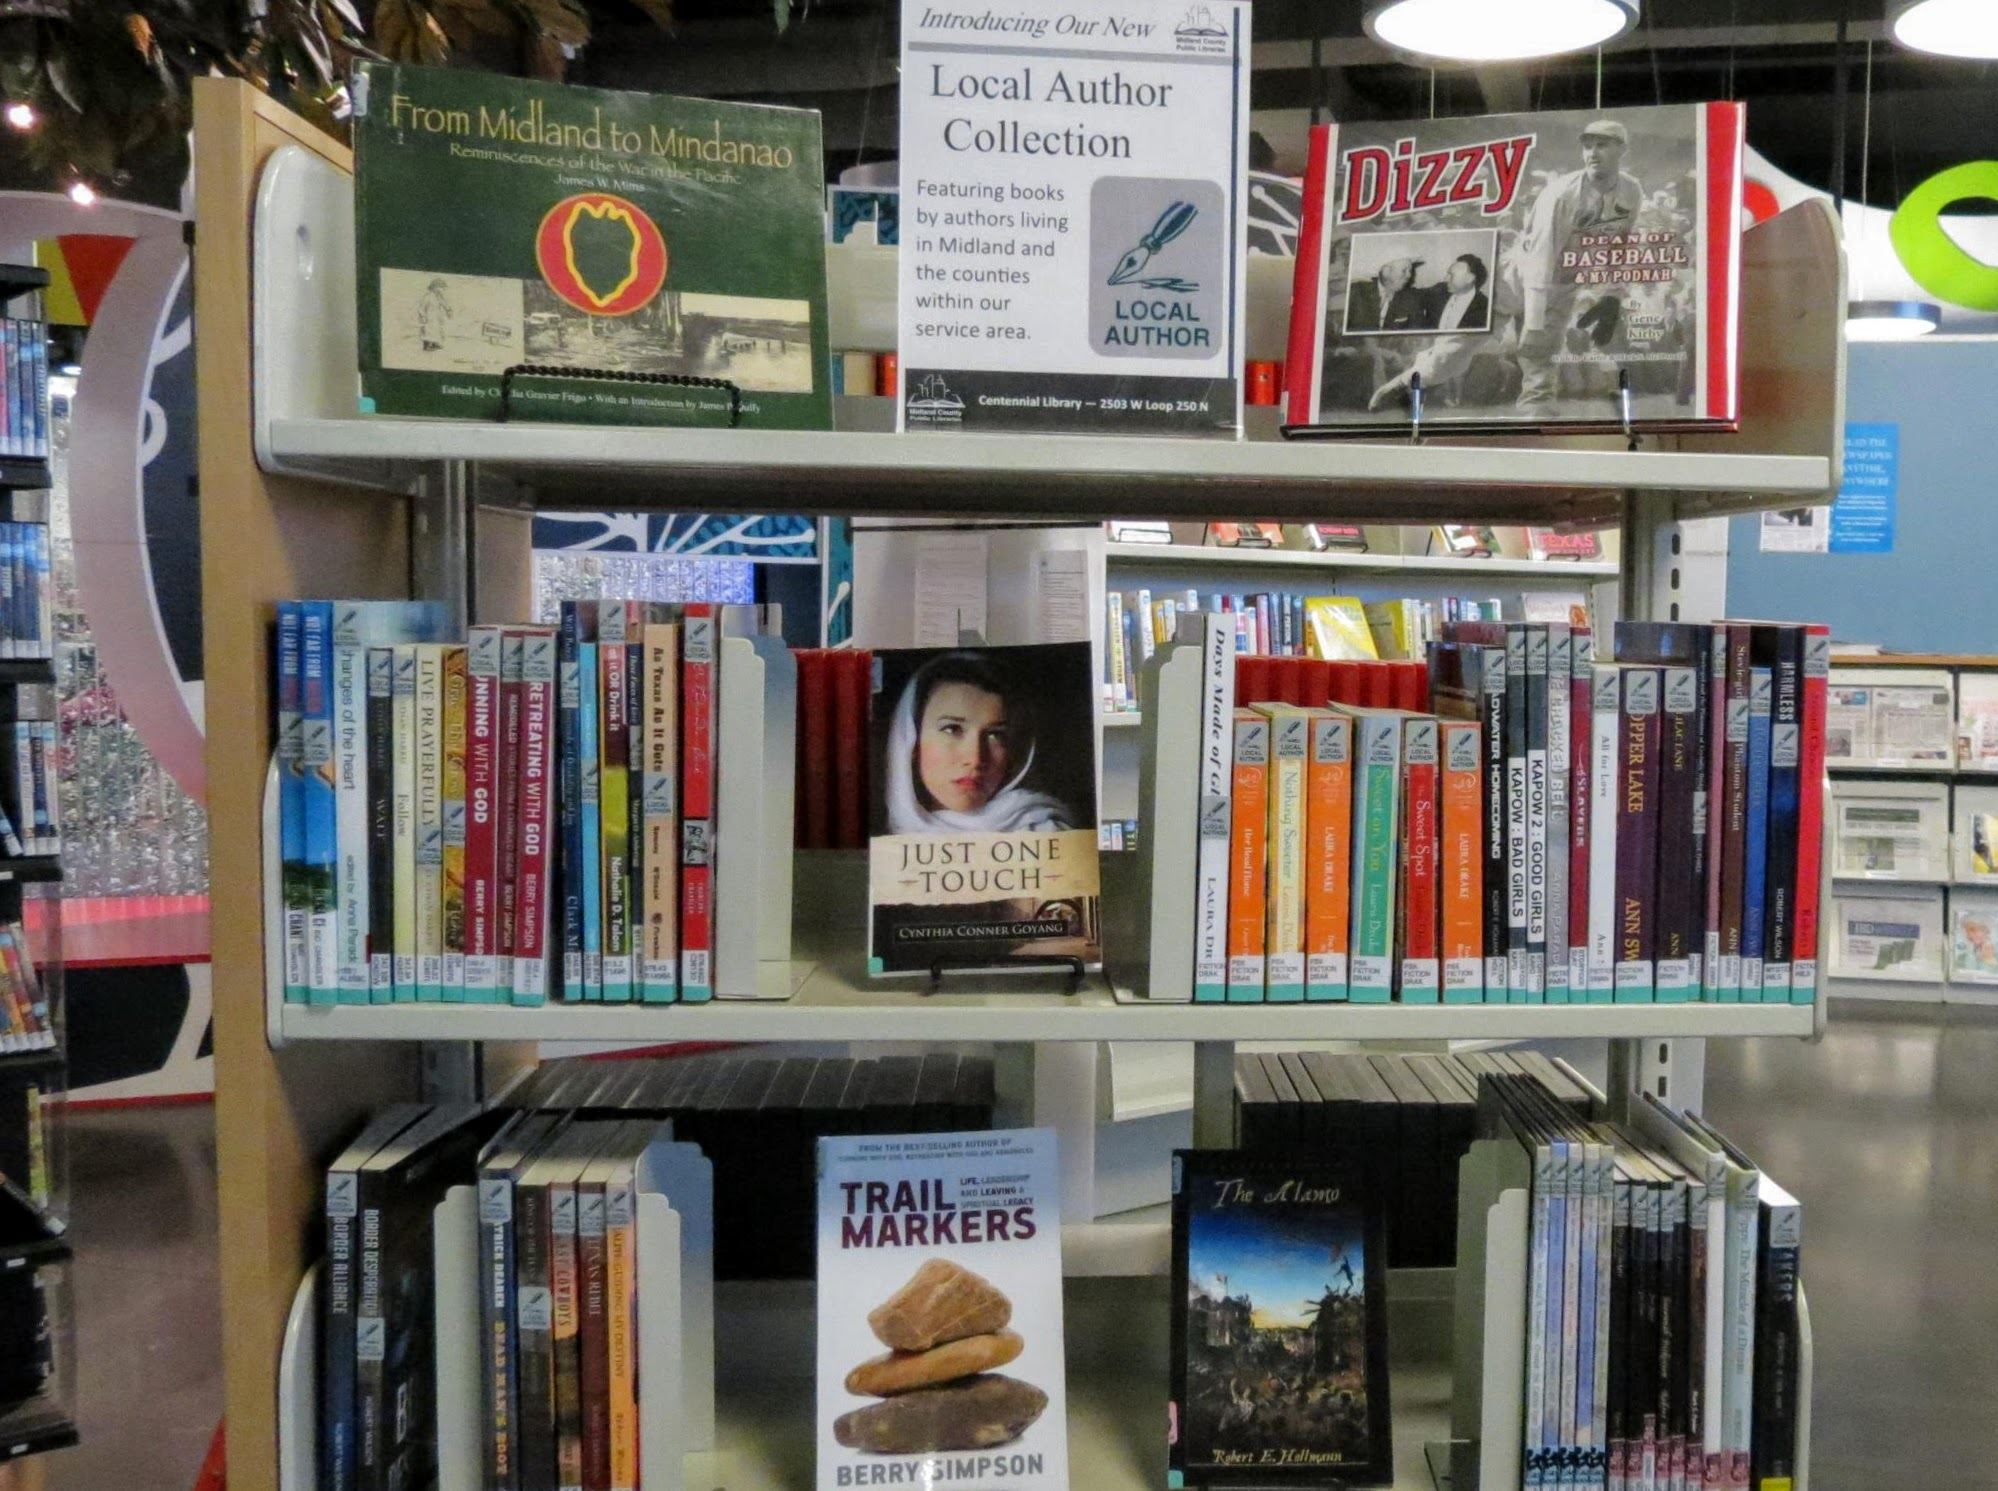 books on shelf with local author titles